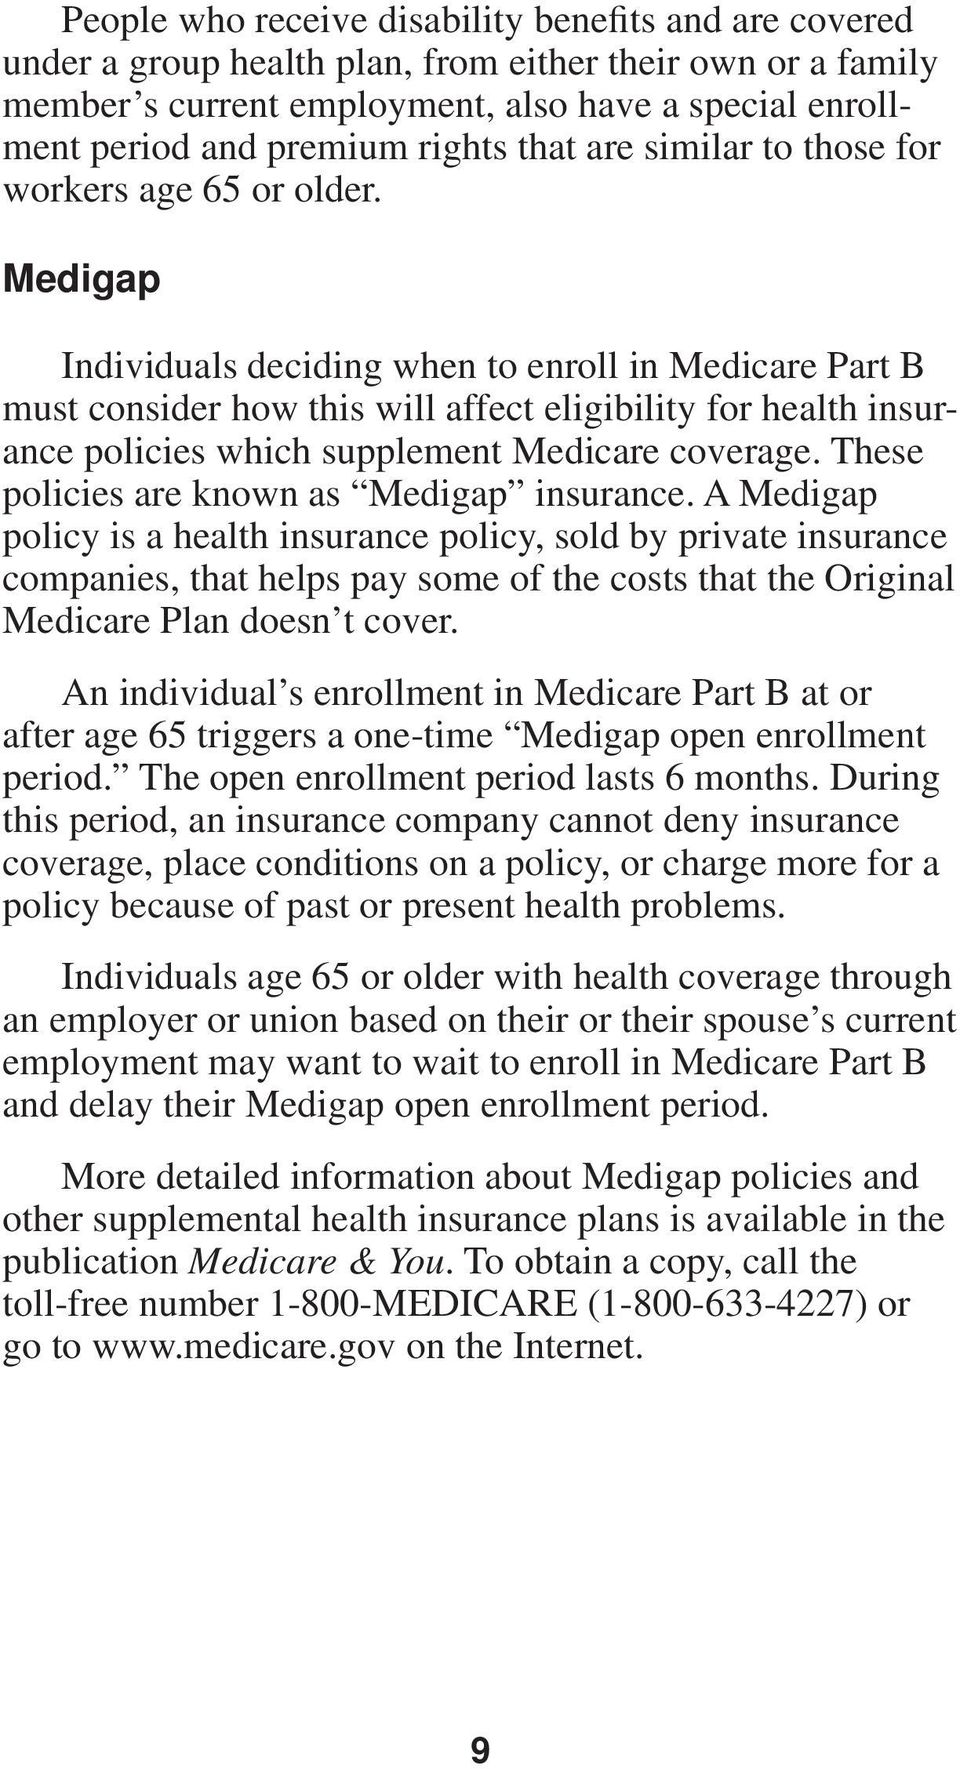 Medigap Individuals deciding when to enroll in Medicare Part B must consider how this will affect eligibility for health insurance policies which supplement Medicare coverage.